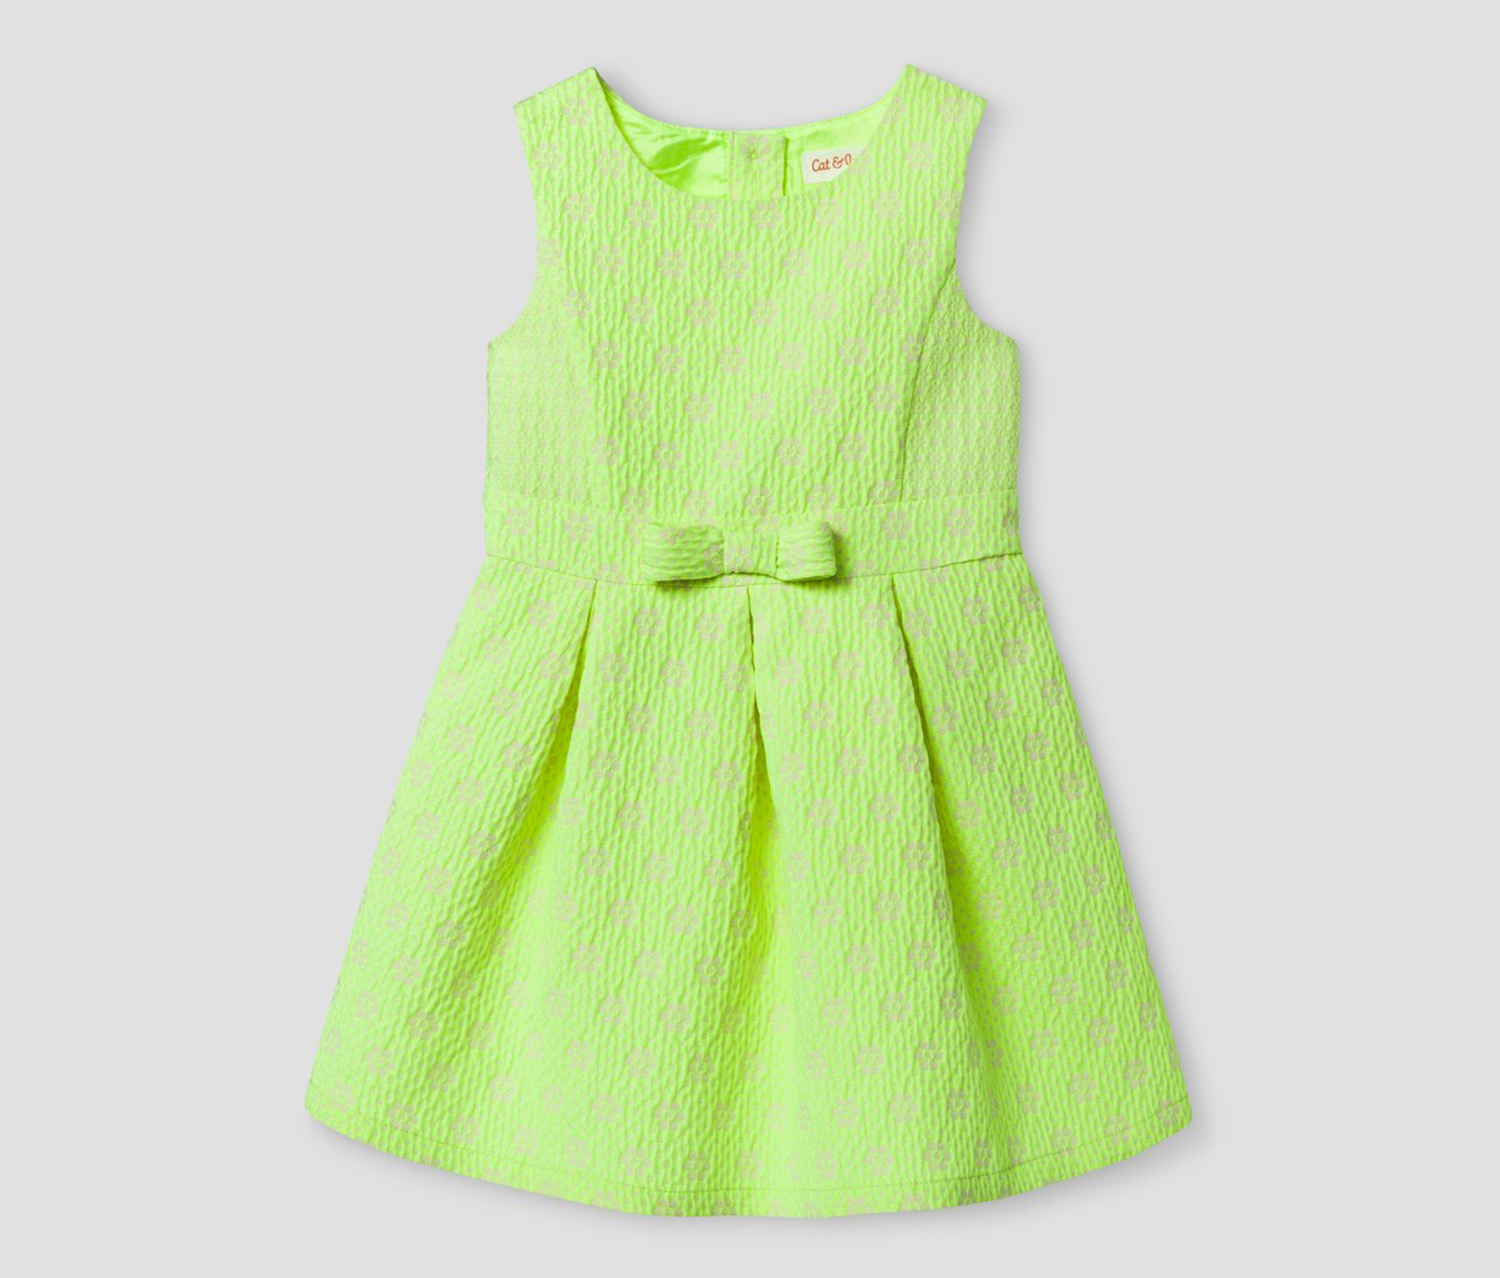 e5452cc12dcab Shop Cat & Jack Cat & Jack Girl's A Line Dress, Lime Green for Kids ...